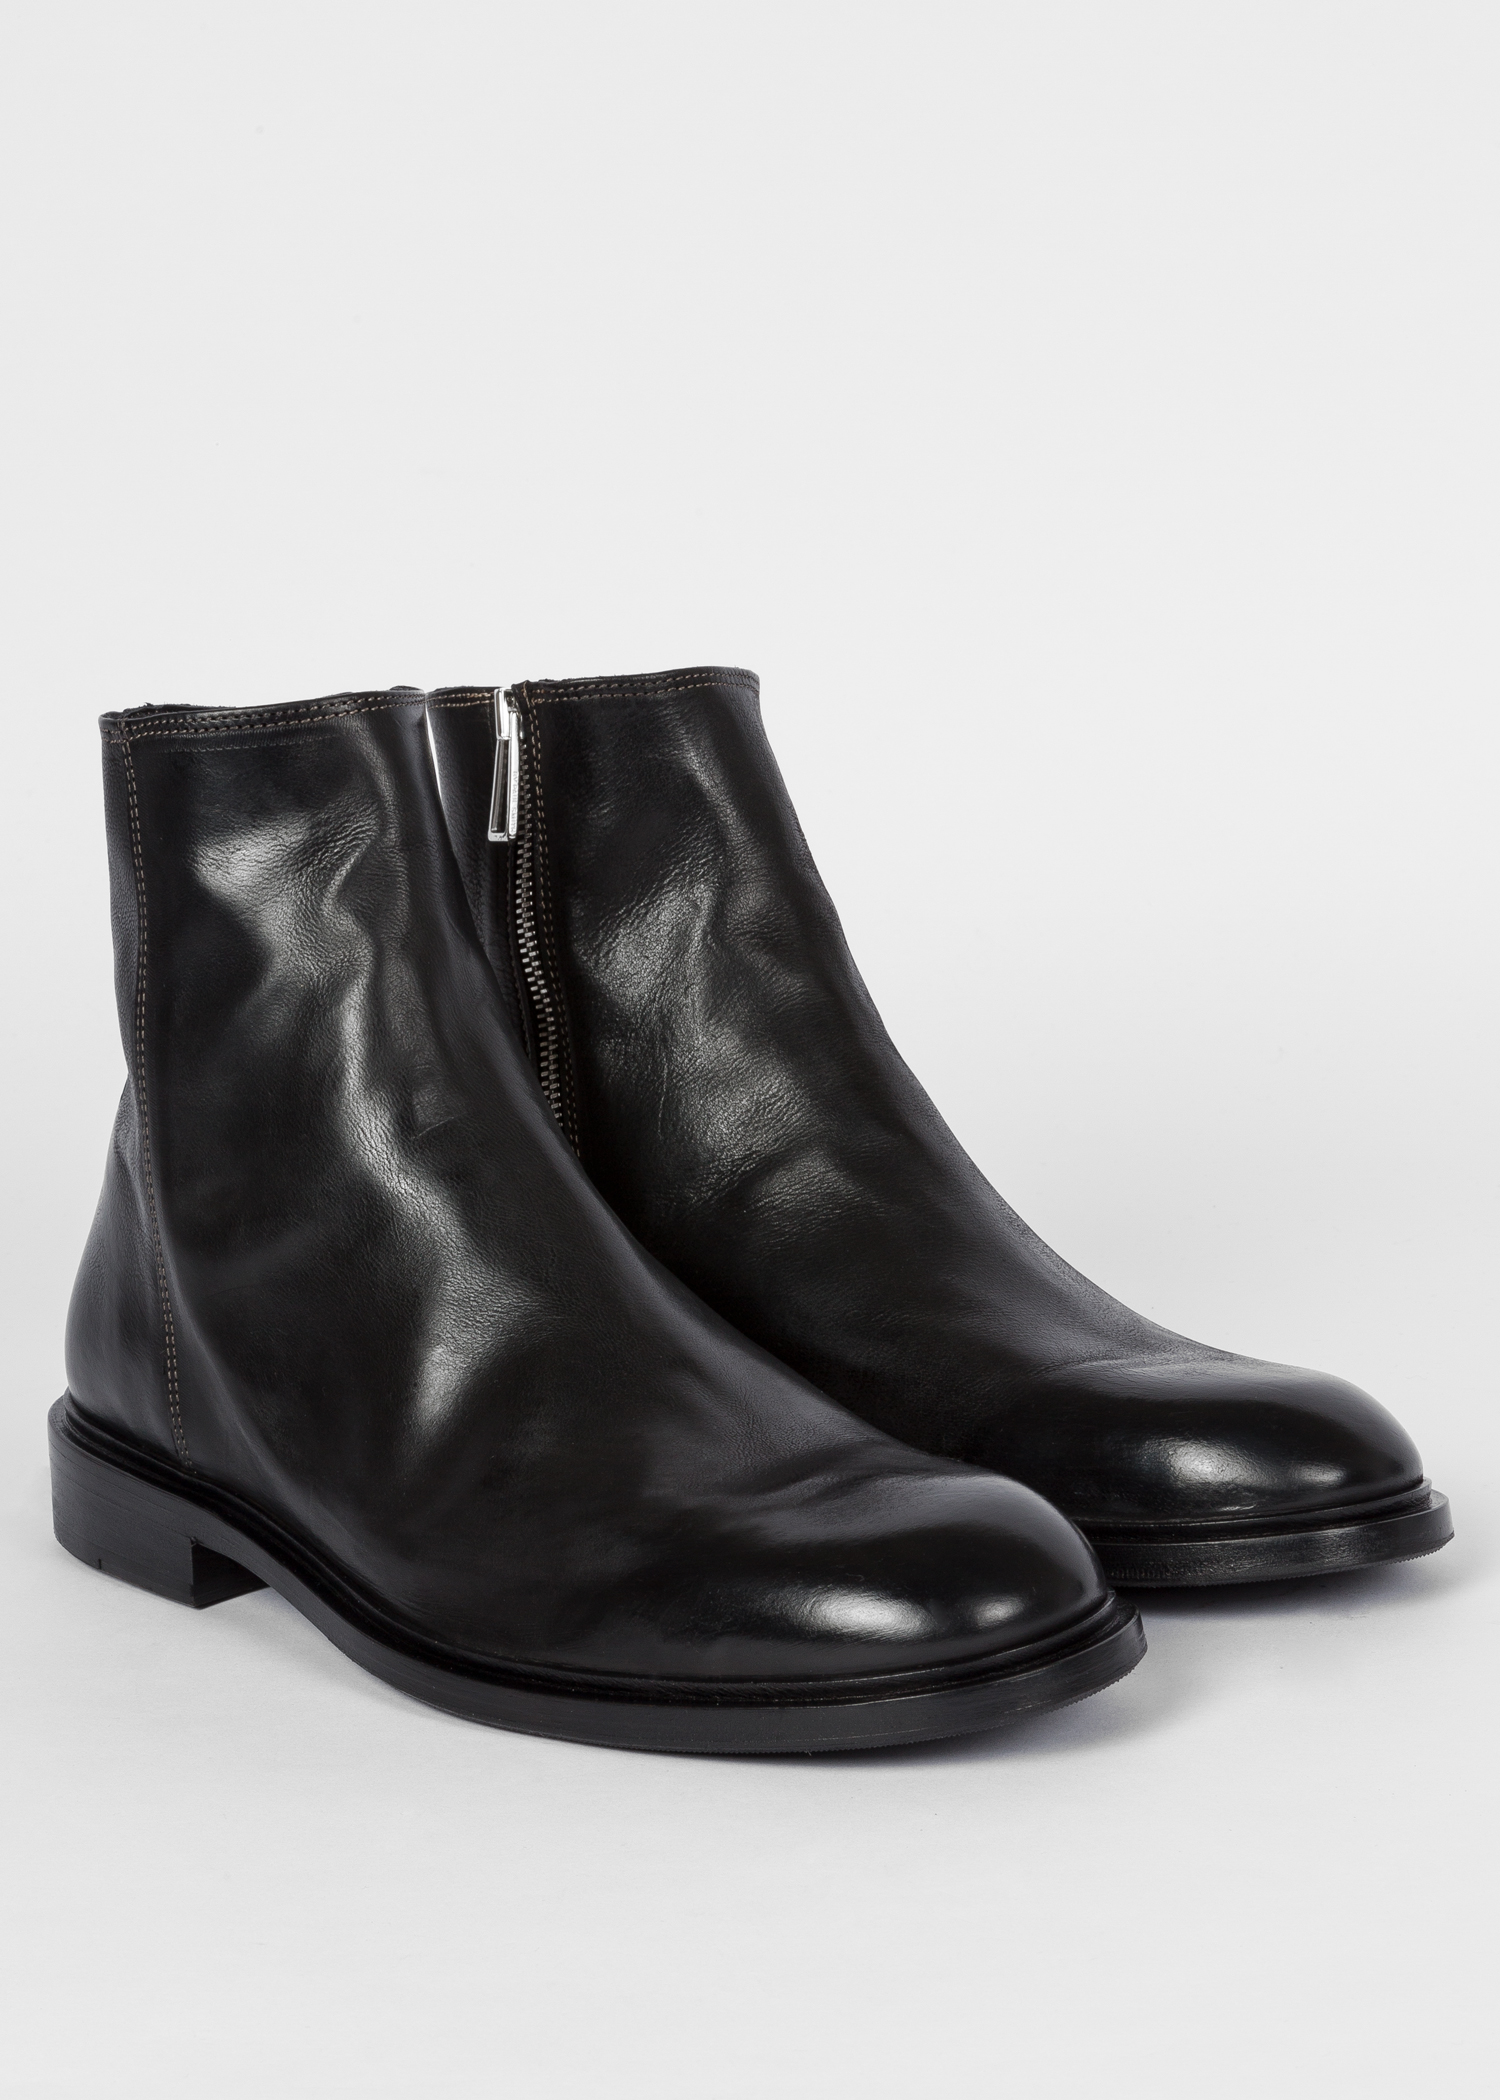 d33c659ebe87 Angled View - Men s Black Leather  Billy  Zip Boots Paul Smith